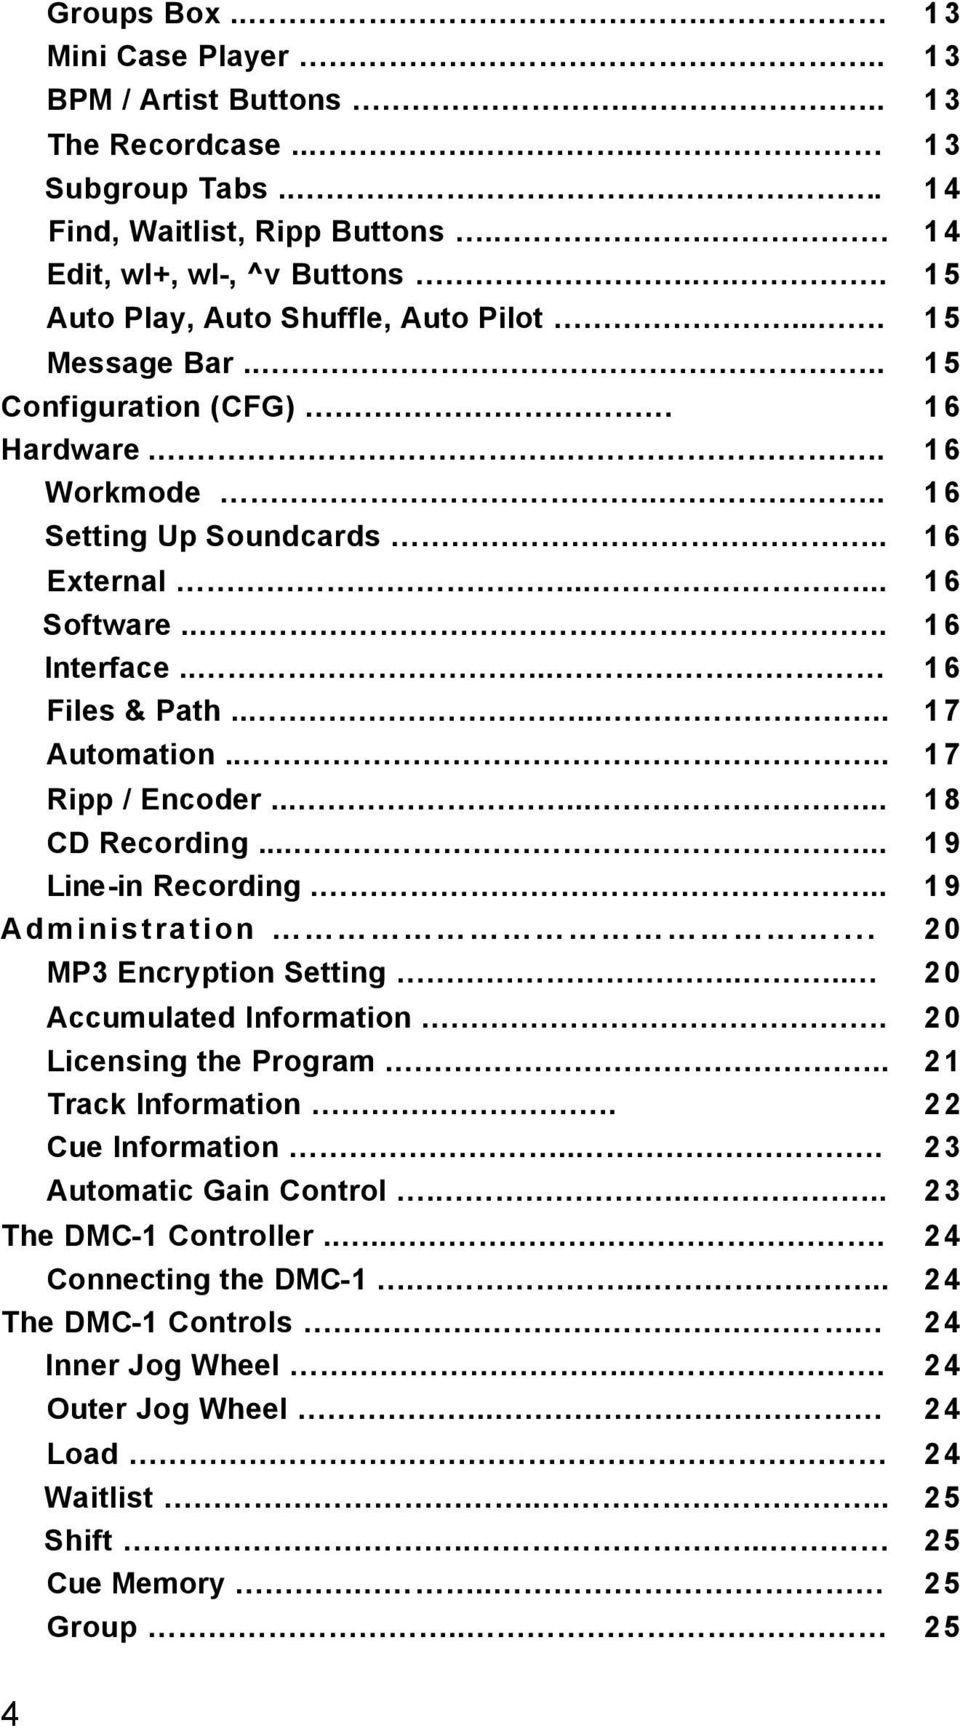 .... 16 Files & Path....... 17 Automation.... 17 Ripp / Encoder......... 18 CD Recording...... 19 Line-in Recording.... 19 Administration... 20 MP3 Encryption Setting.... 20 Accumulated Information.